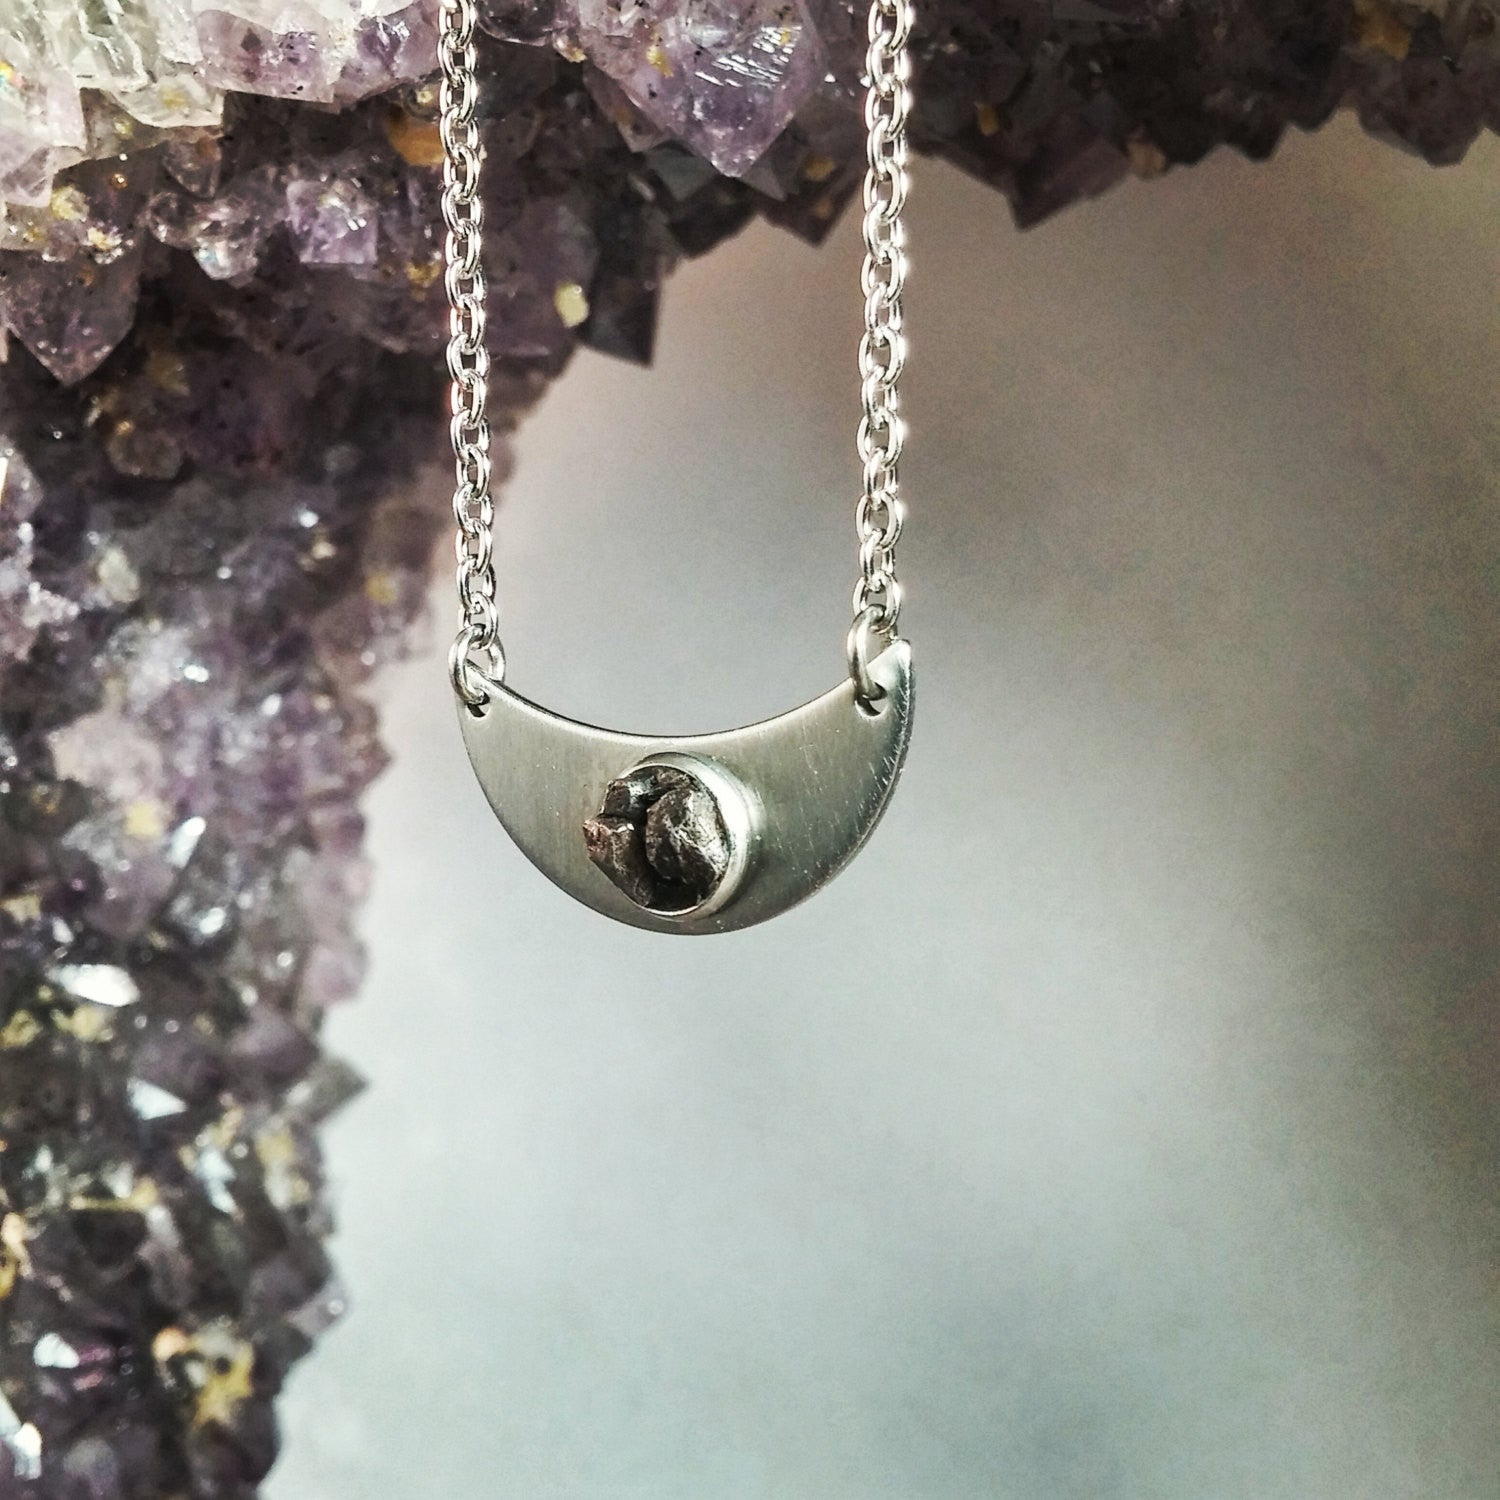 The Mimas Meteorite Necklace